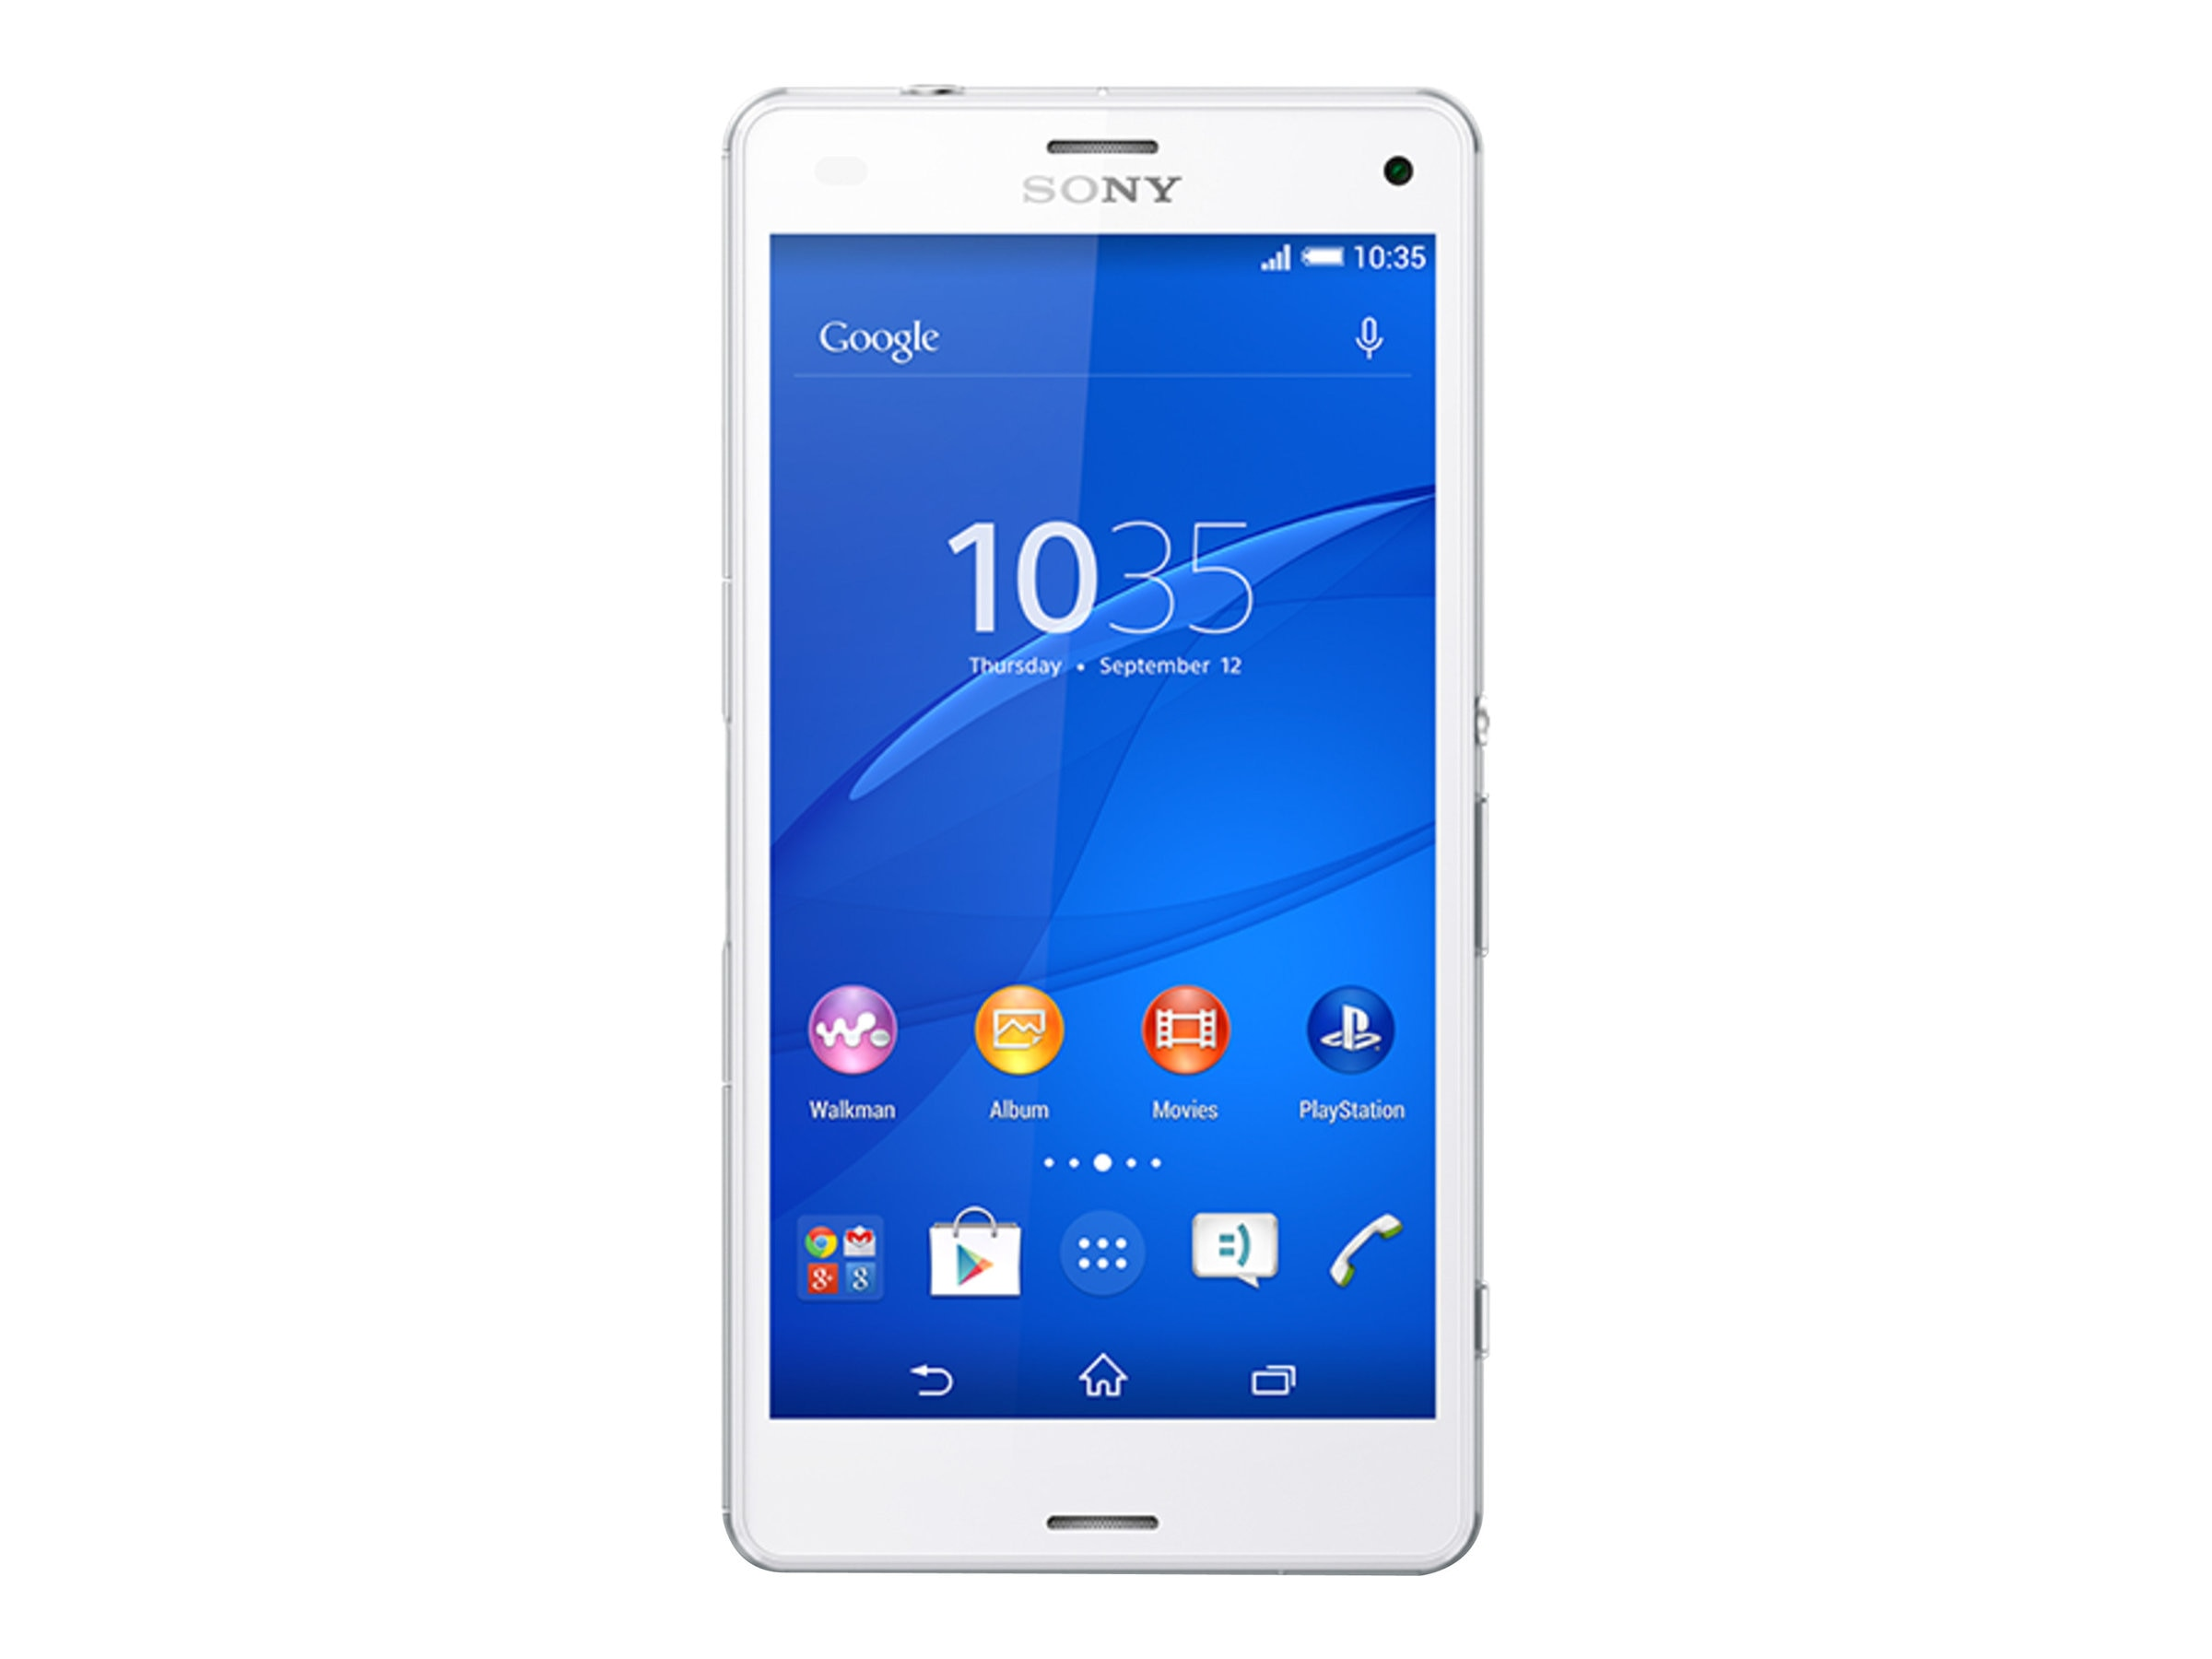 Sony XPeria Z3 Compact LTE D5803 4.6 2.5GHZ 4CR 16GB 20.7MP NFC Phone - White, 1290-0539, 17964498, Cellular Phones